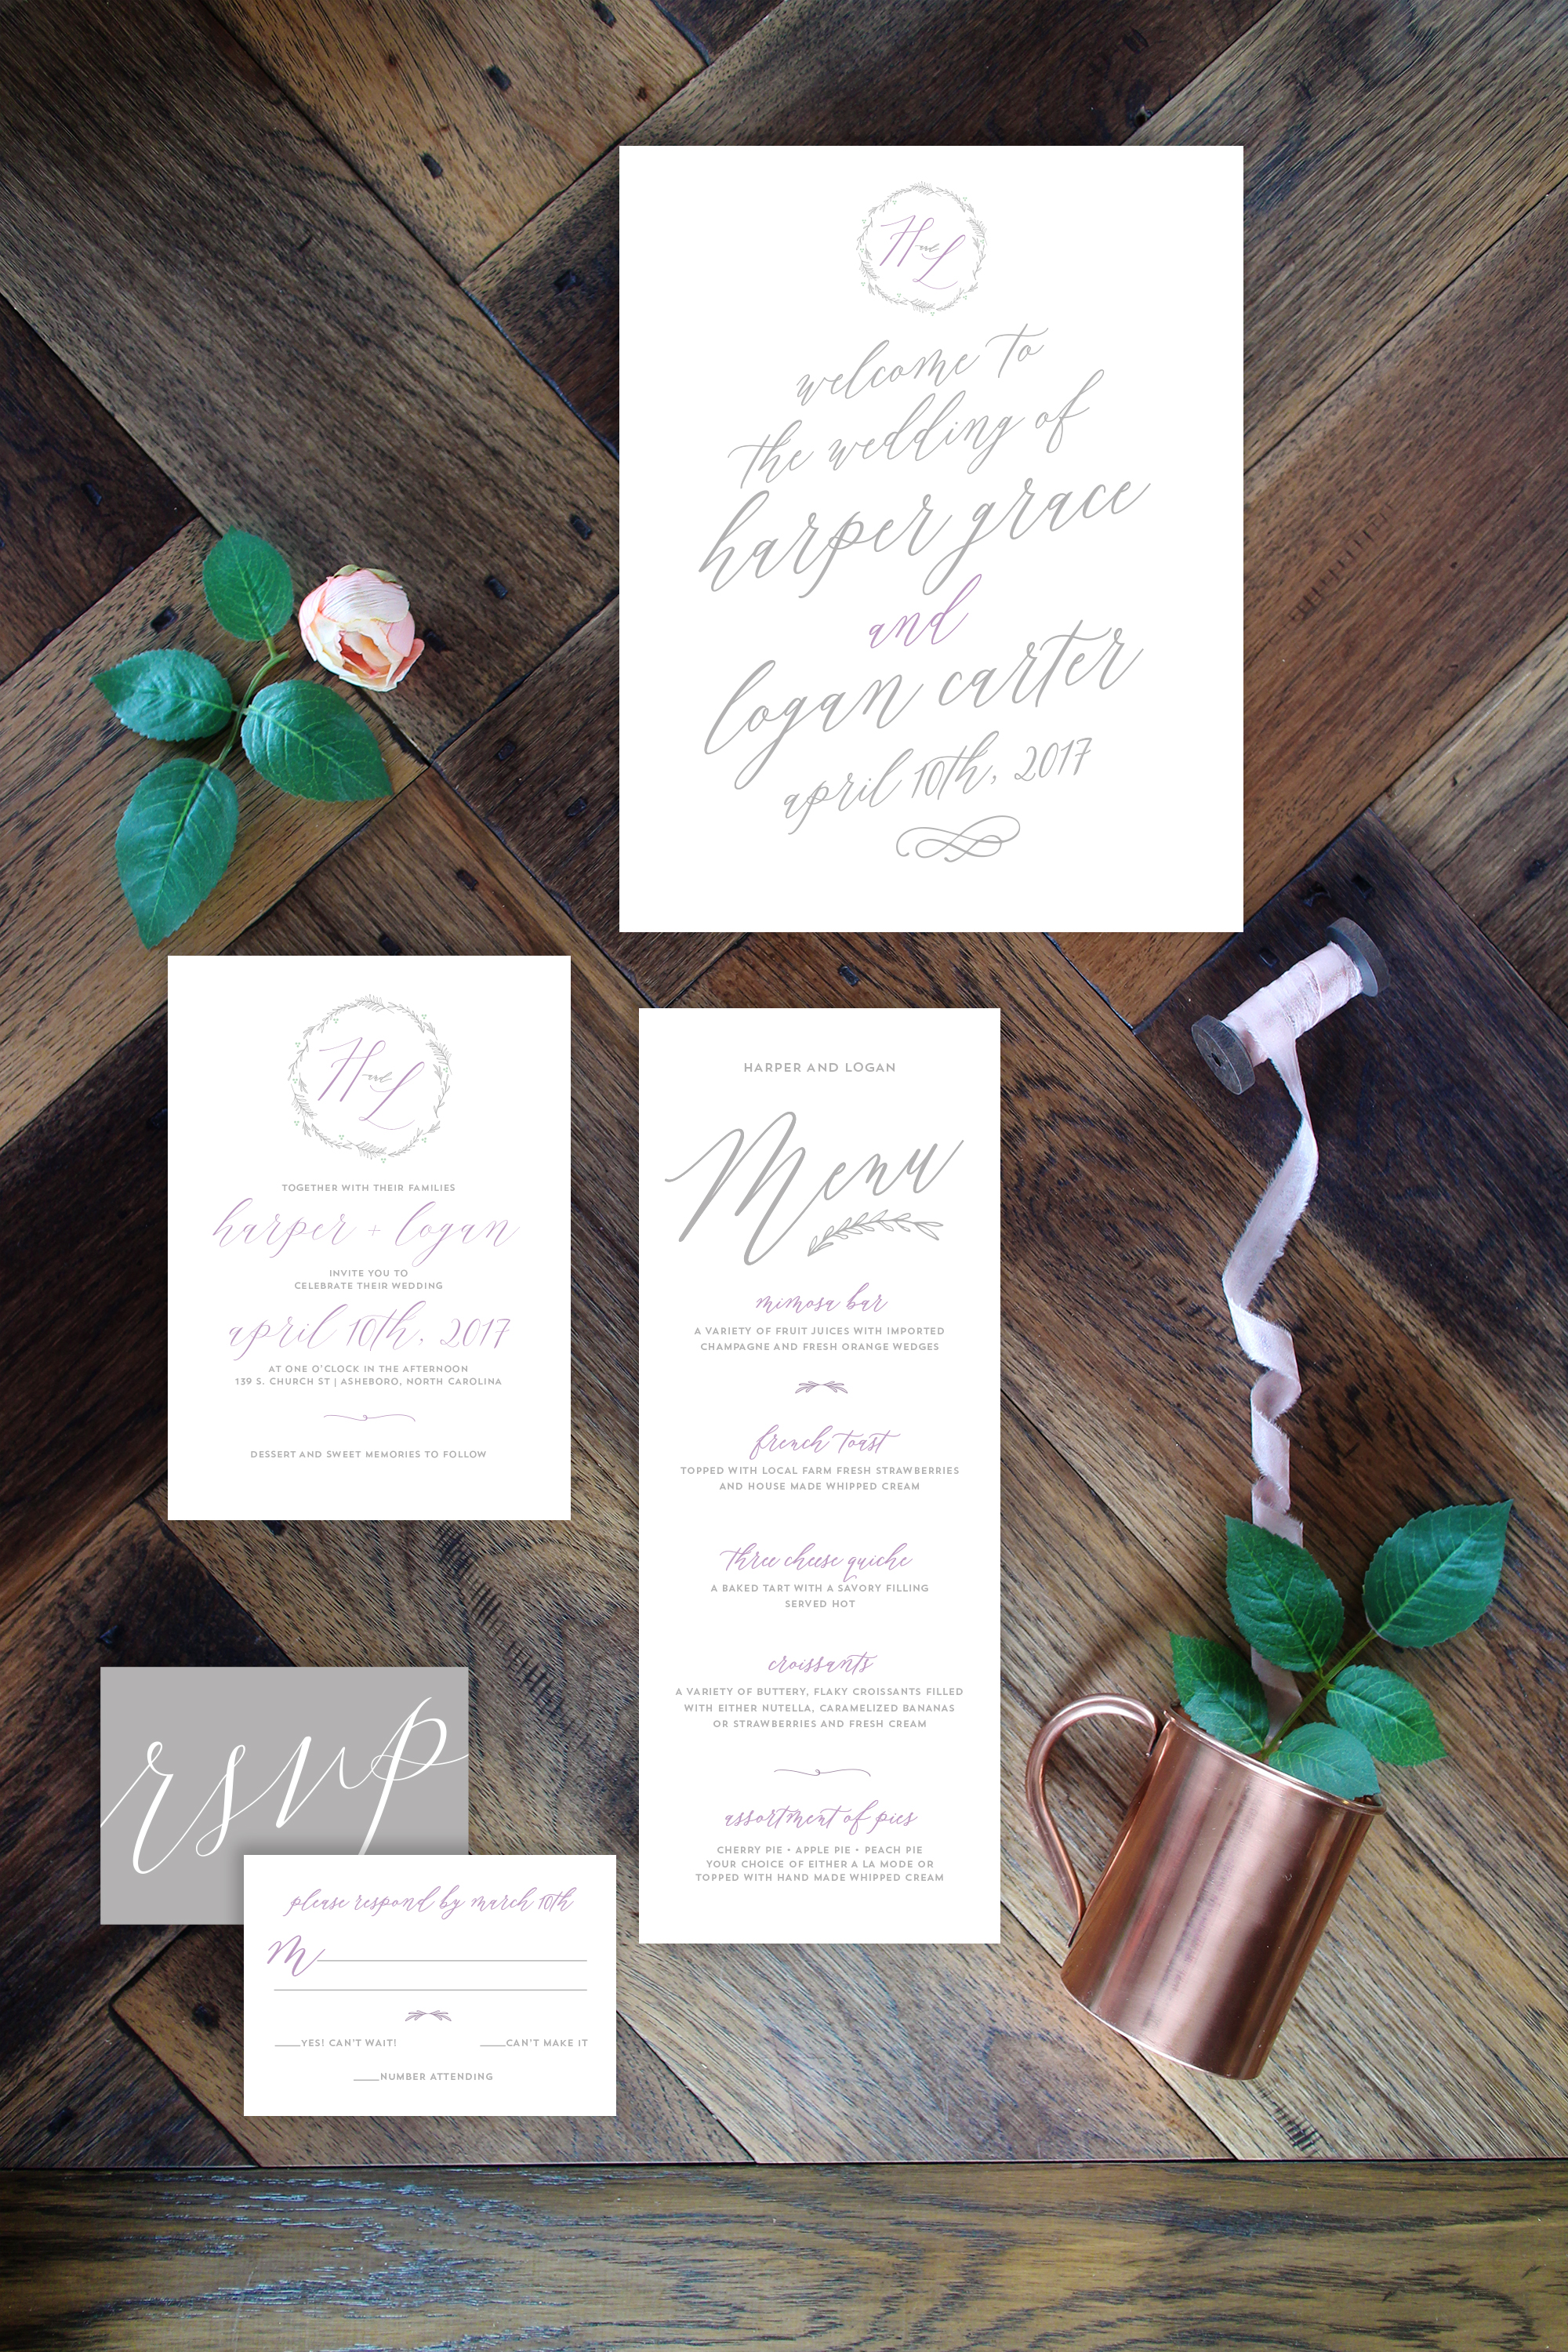 Calligraphic Lilac and Gray Wedding Suite by Yellow Heart Art.jpg